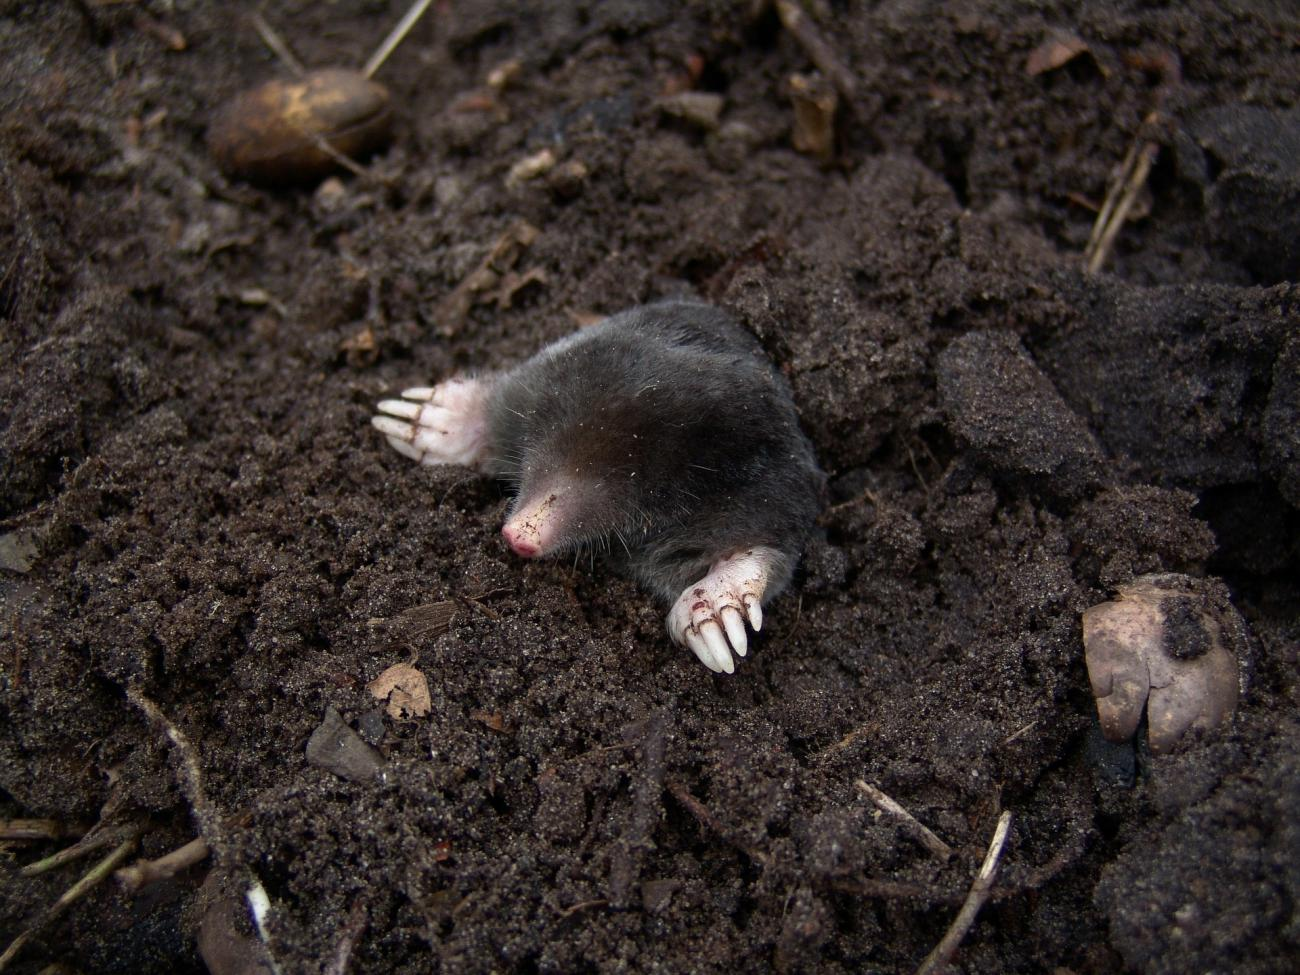 Moles: How to Identify and Get Rid of Moles in the Garden or